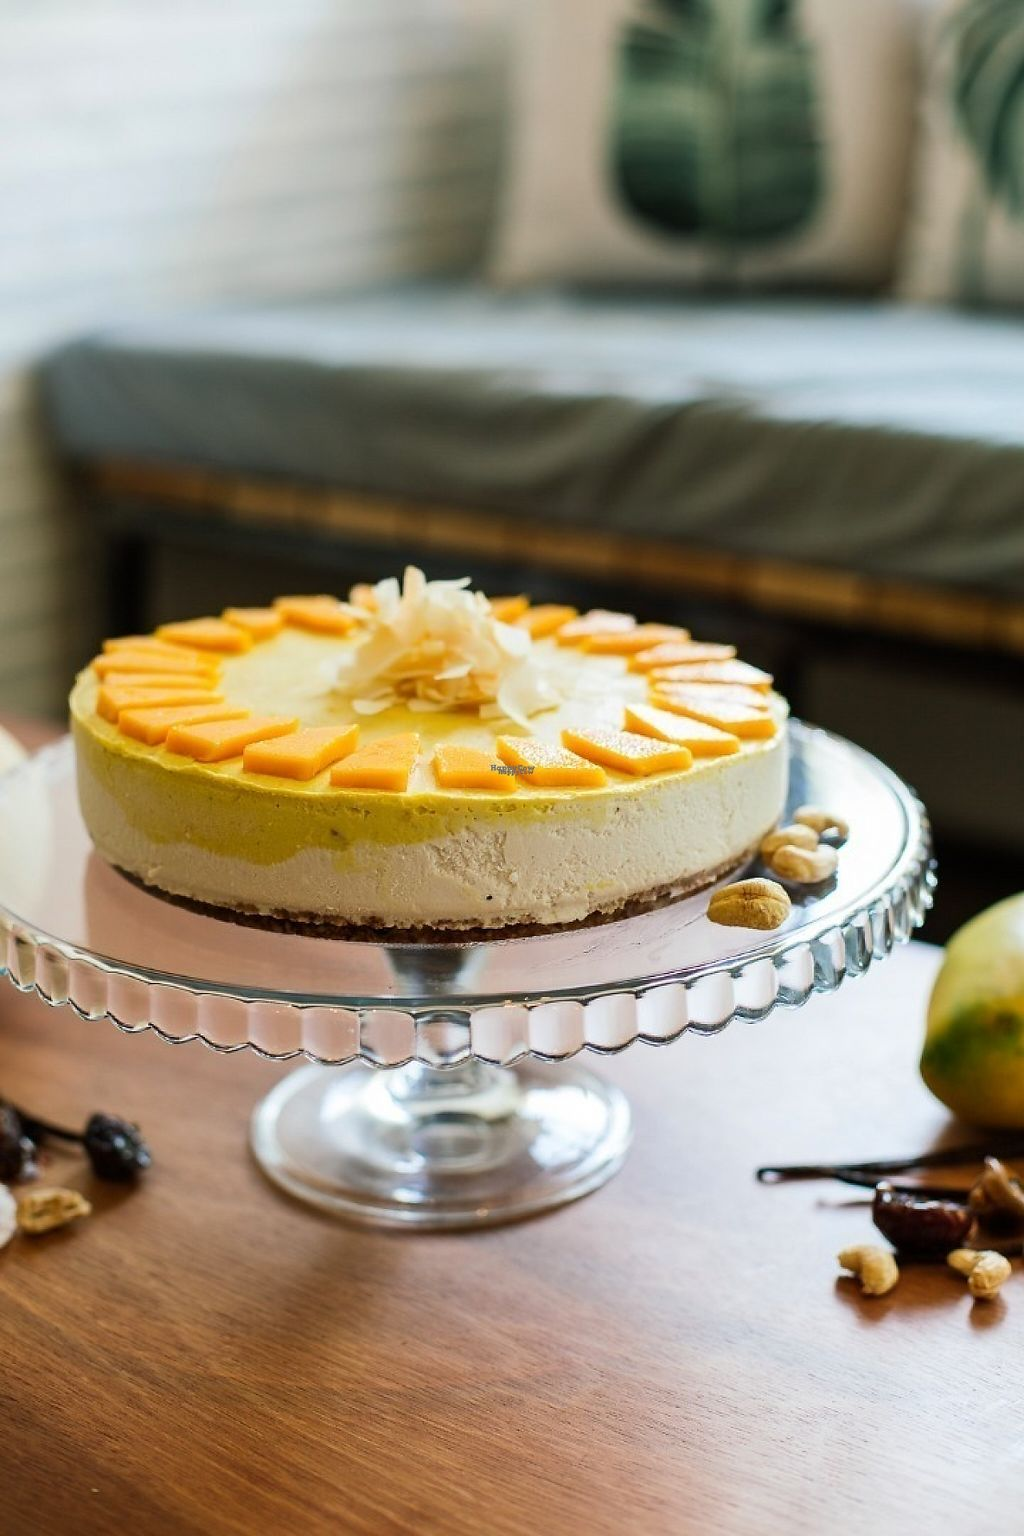 "Photo of Backyard Cafe  by <a href=""/members/profile/EmmaFountain"">EmmaFountain</a> <br/>Raw Mango & Vanilla Cheesecake <br/> February 2, 2017  - <a href='/contact/abuse/image/57031/220806'>Report</a>"